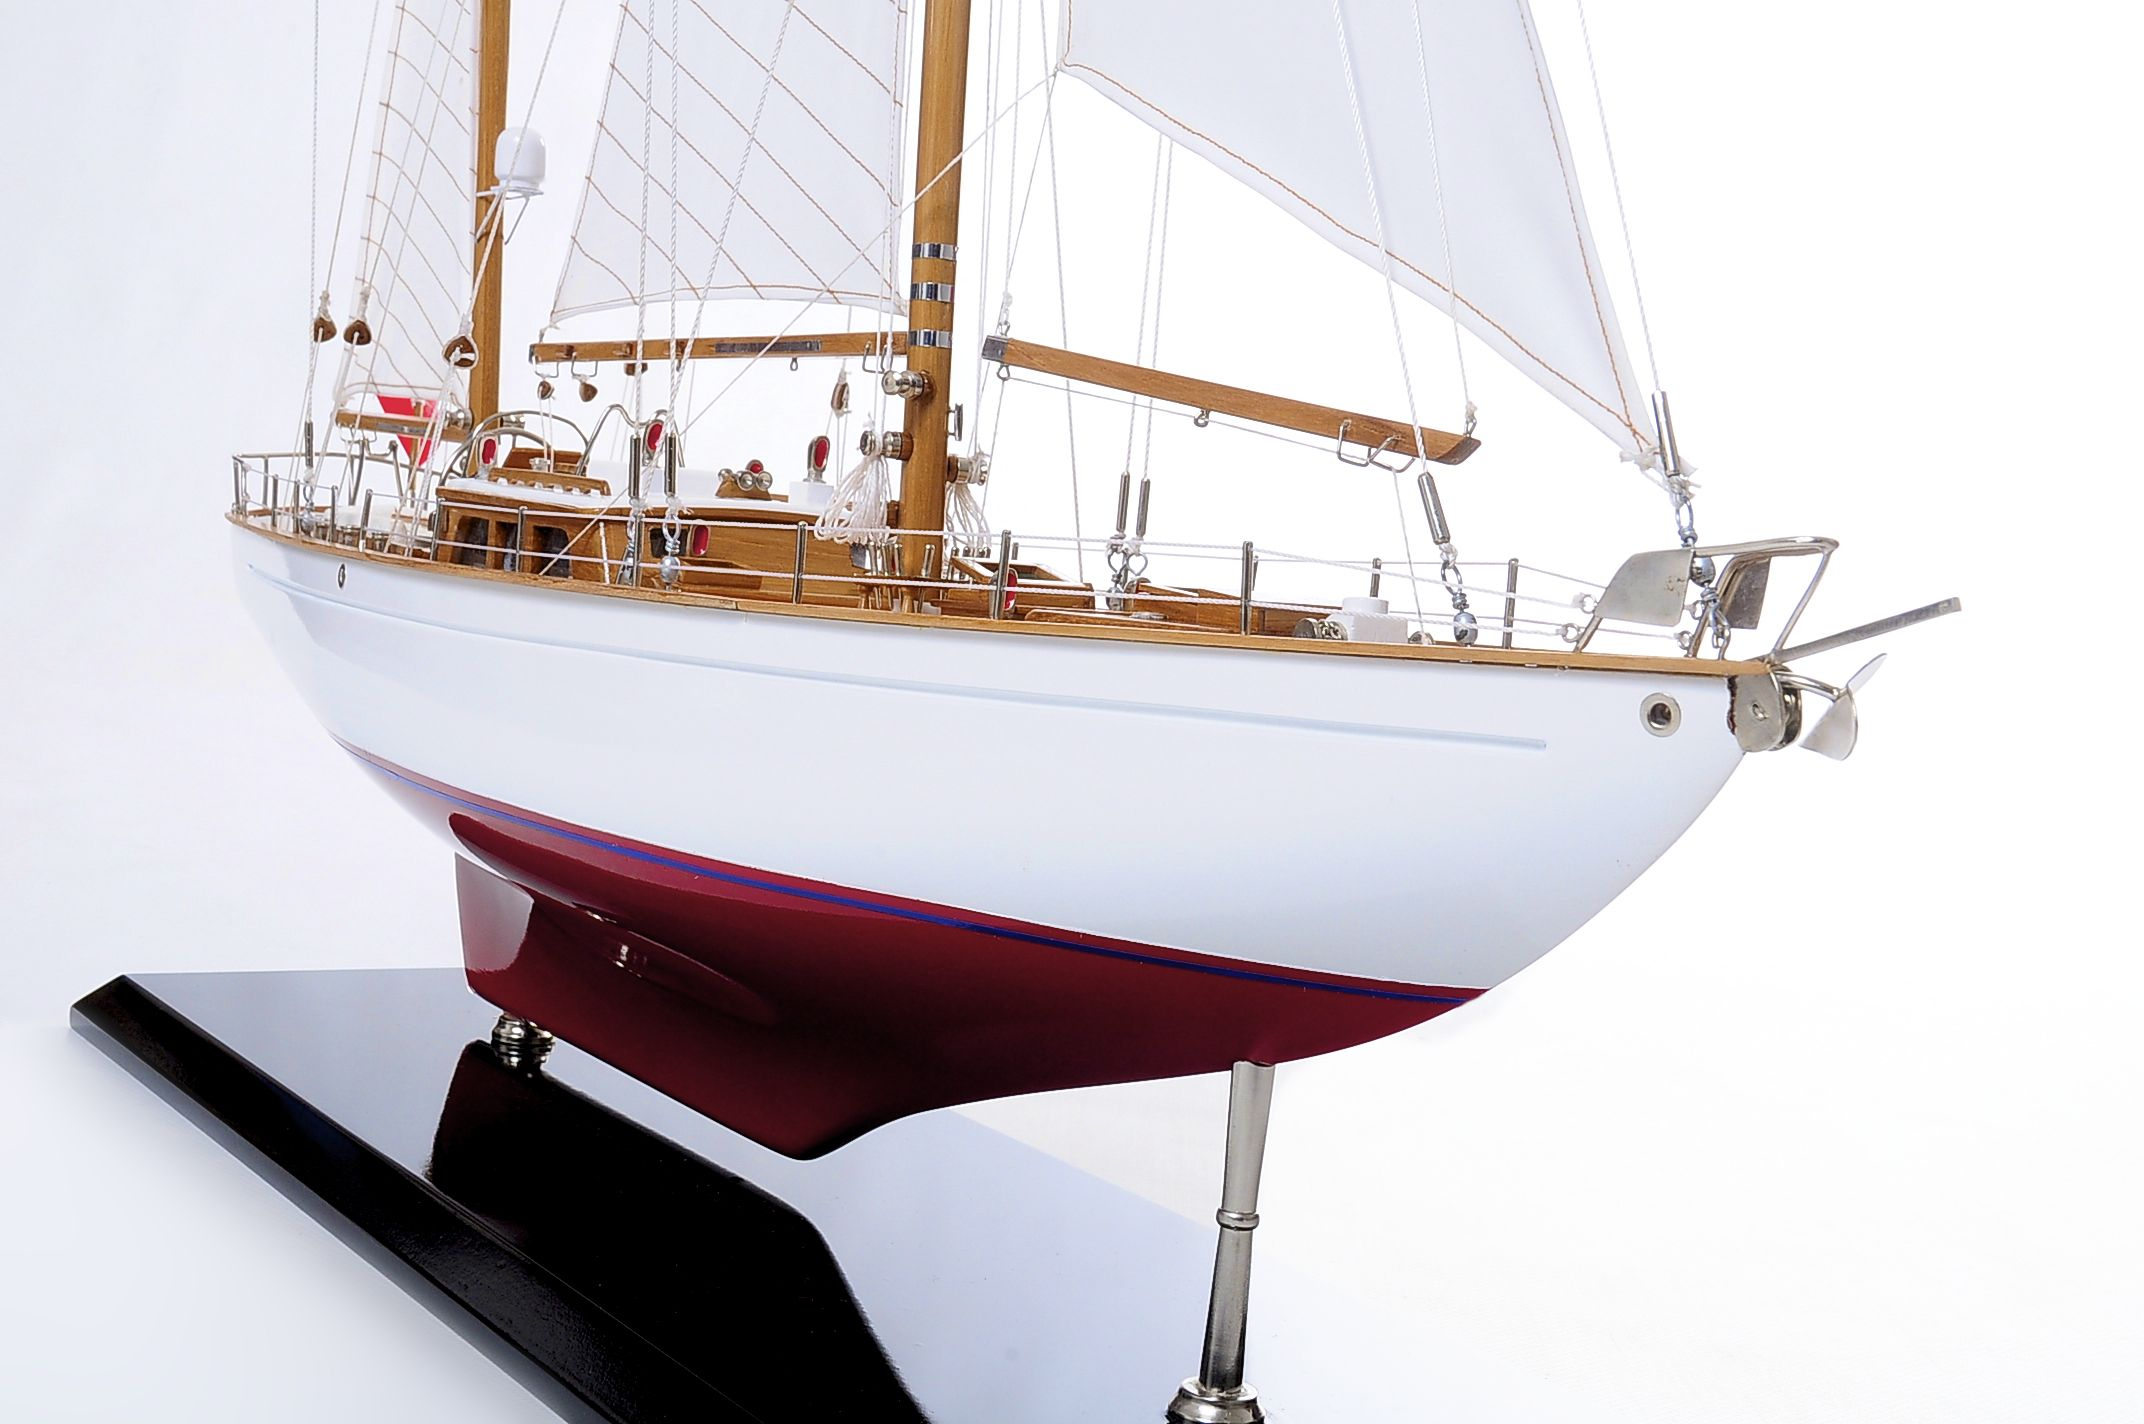 1486-6504-Sea-Gypsy-Sailing-Yacht